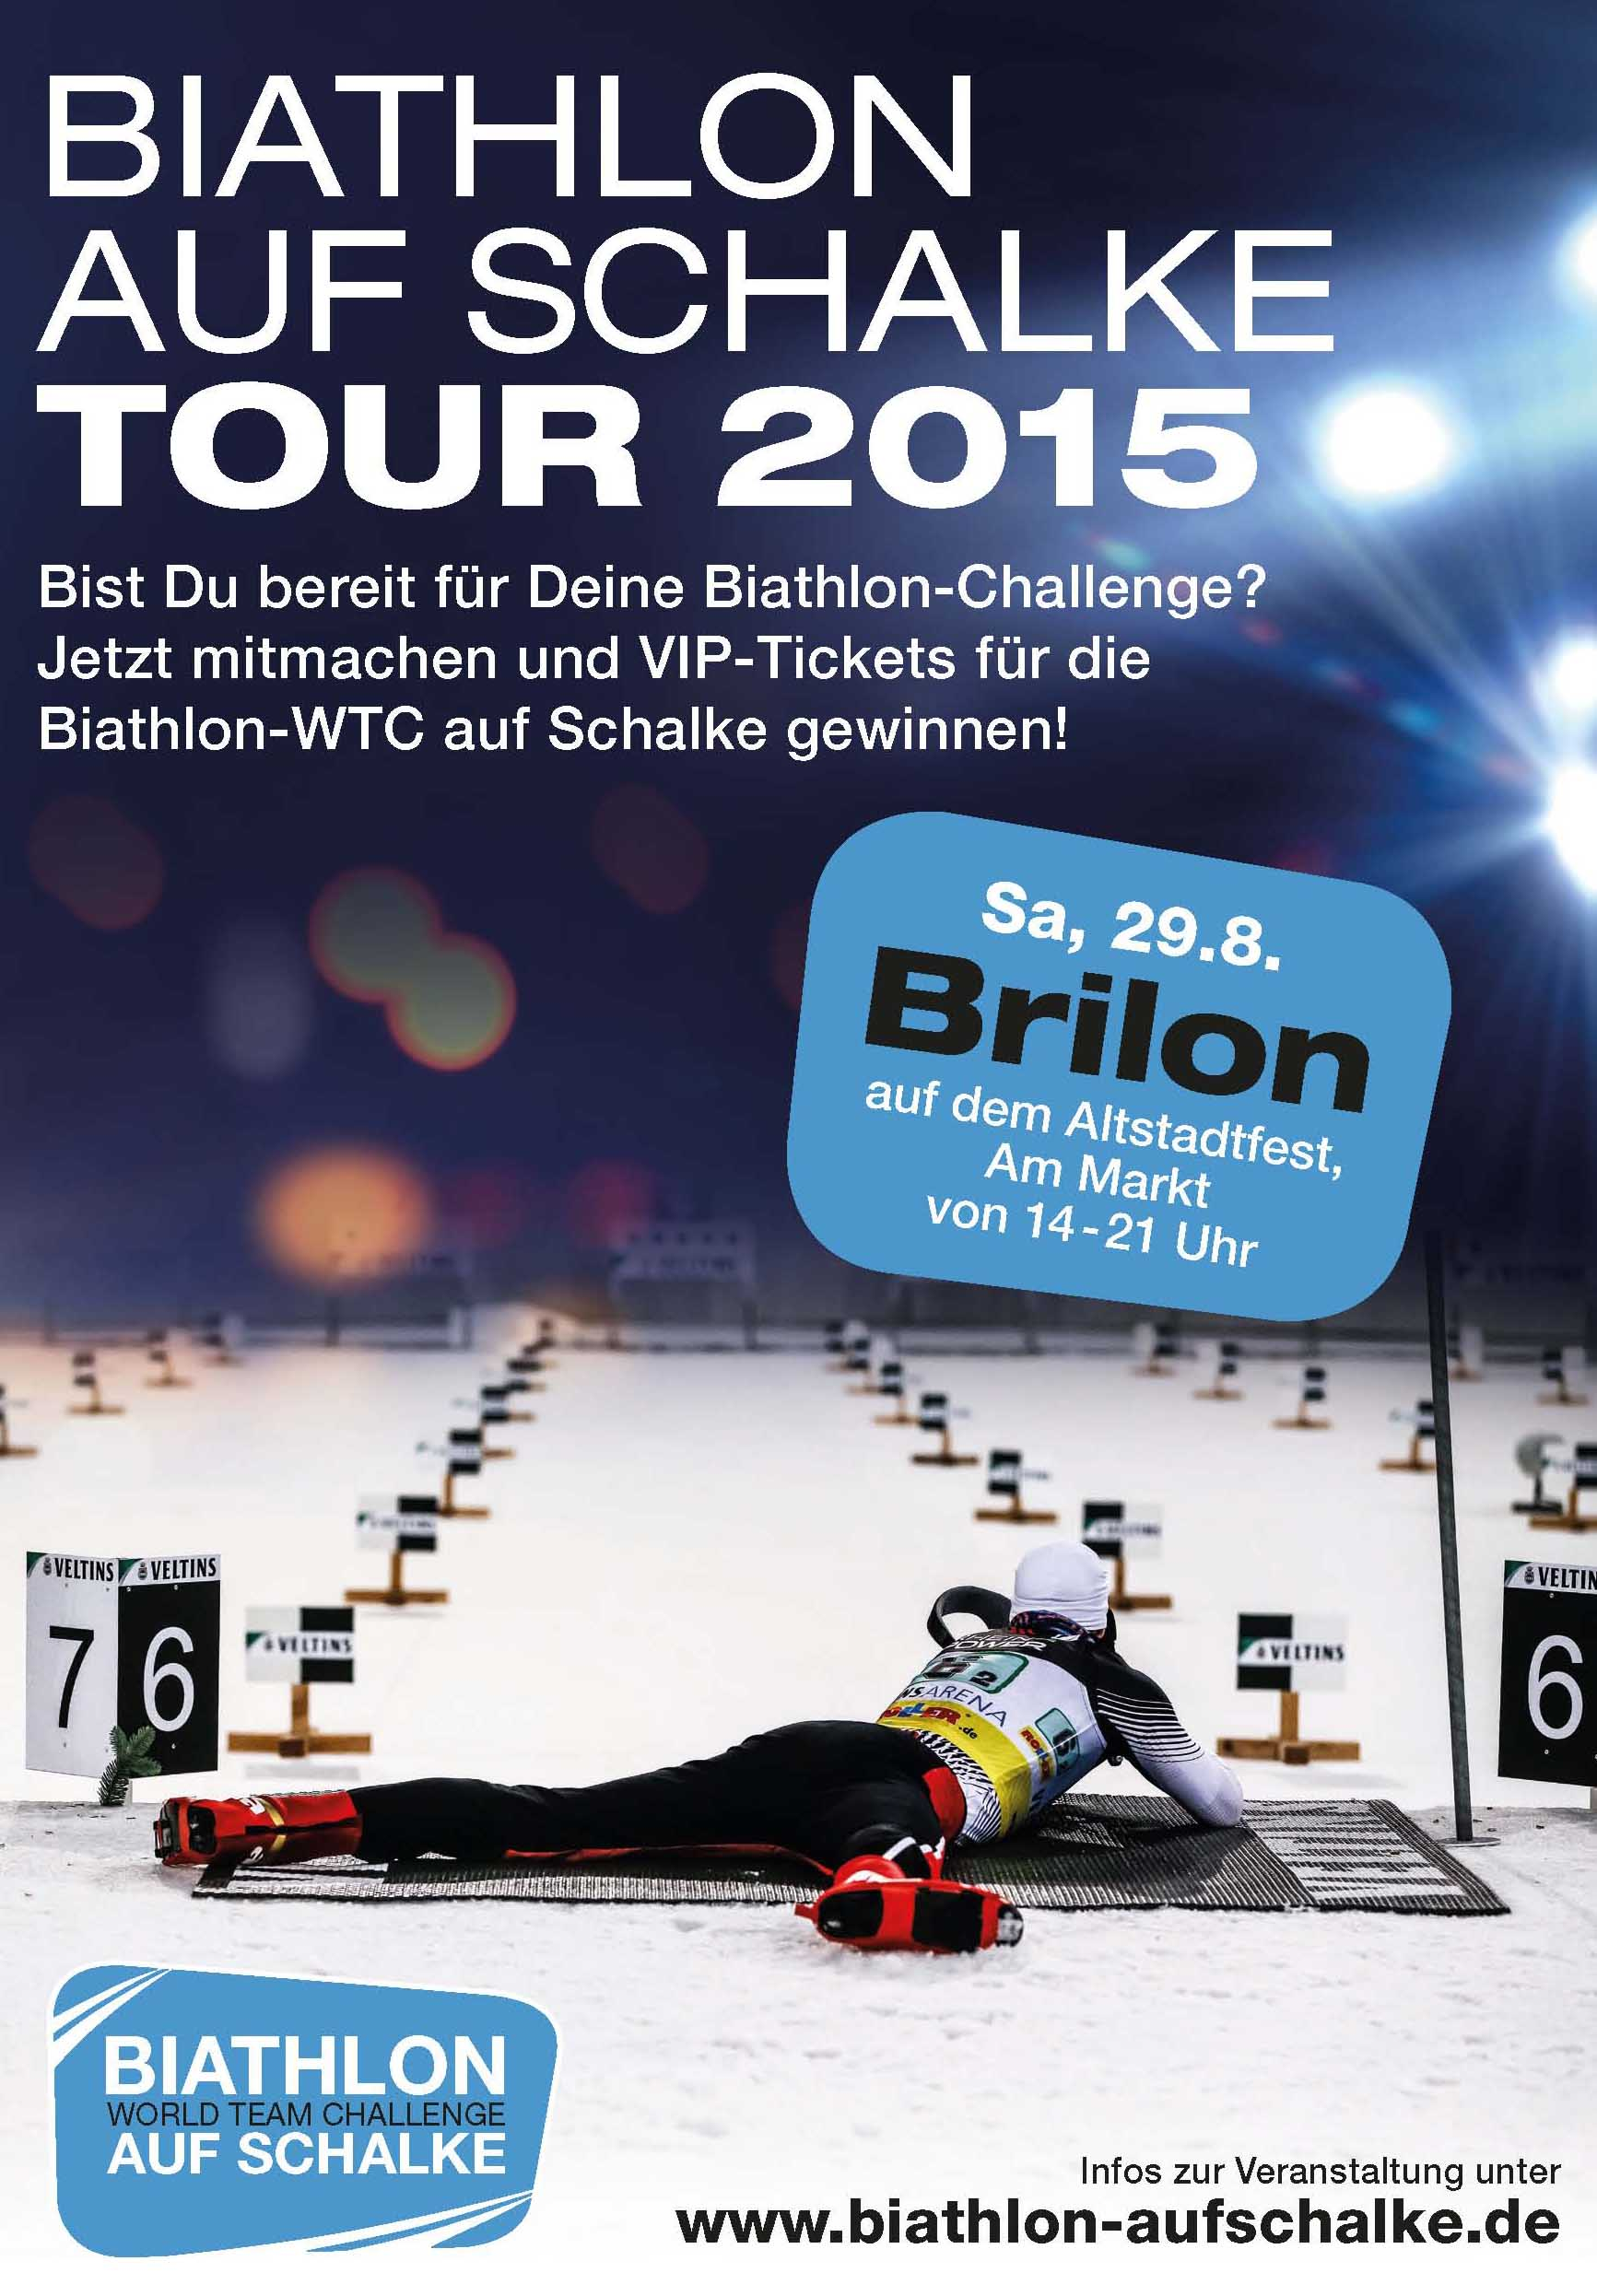 vorbericht zur 5 etappe der biathlon auf schalke tour biathlon. Black Bedroom Furniture Sets. Home Design Ideas